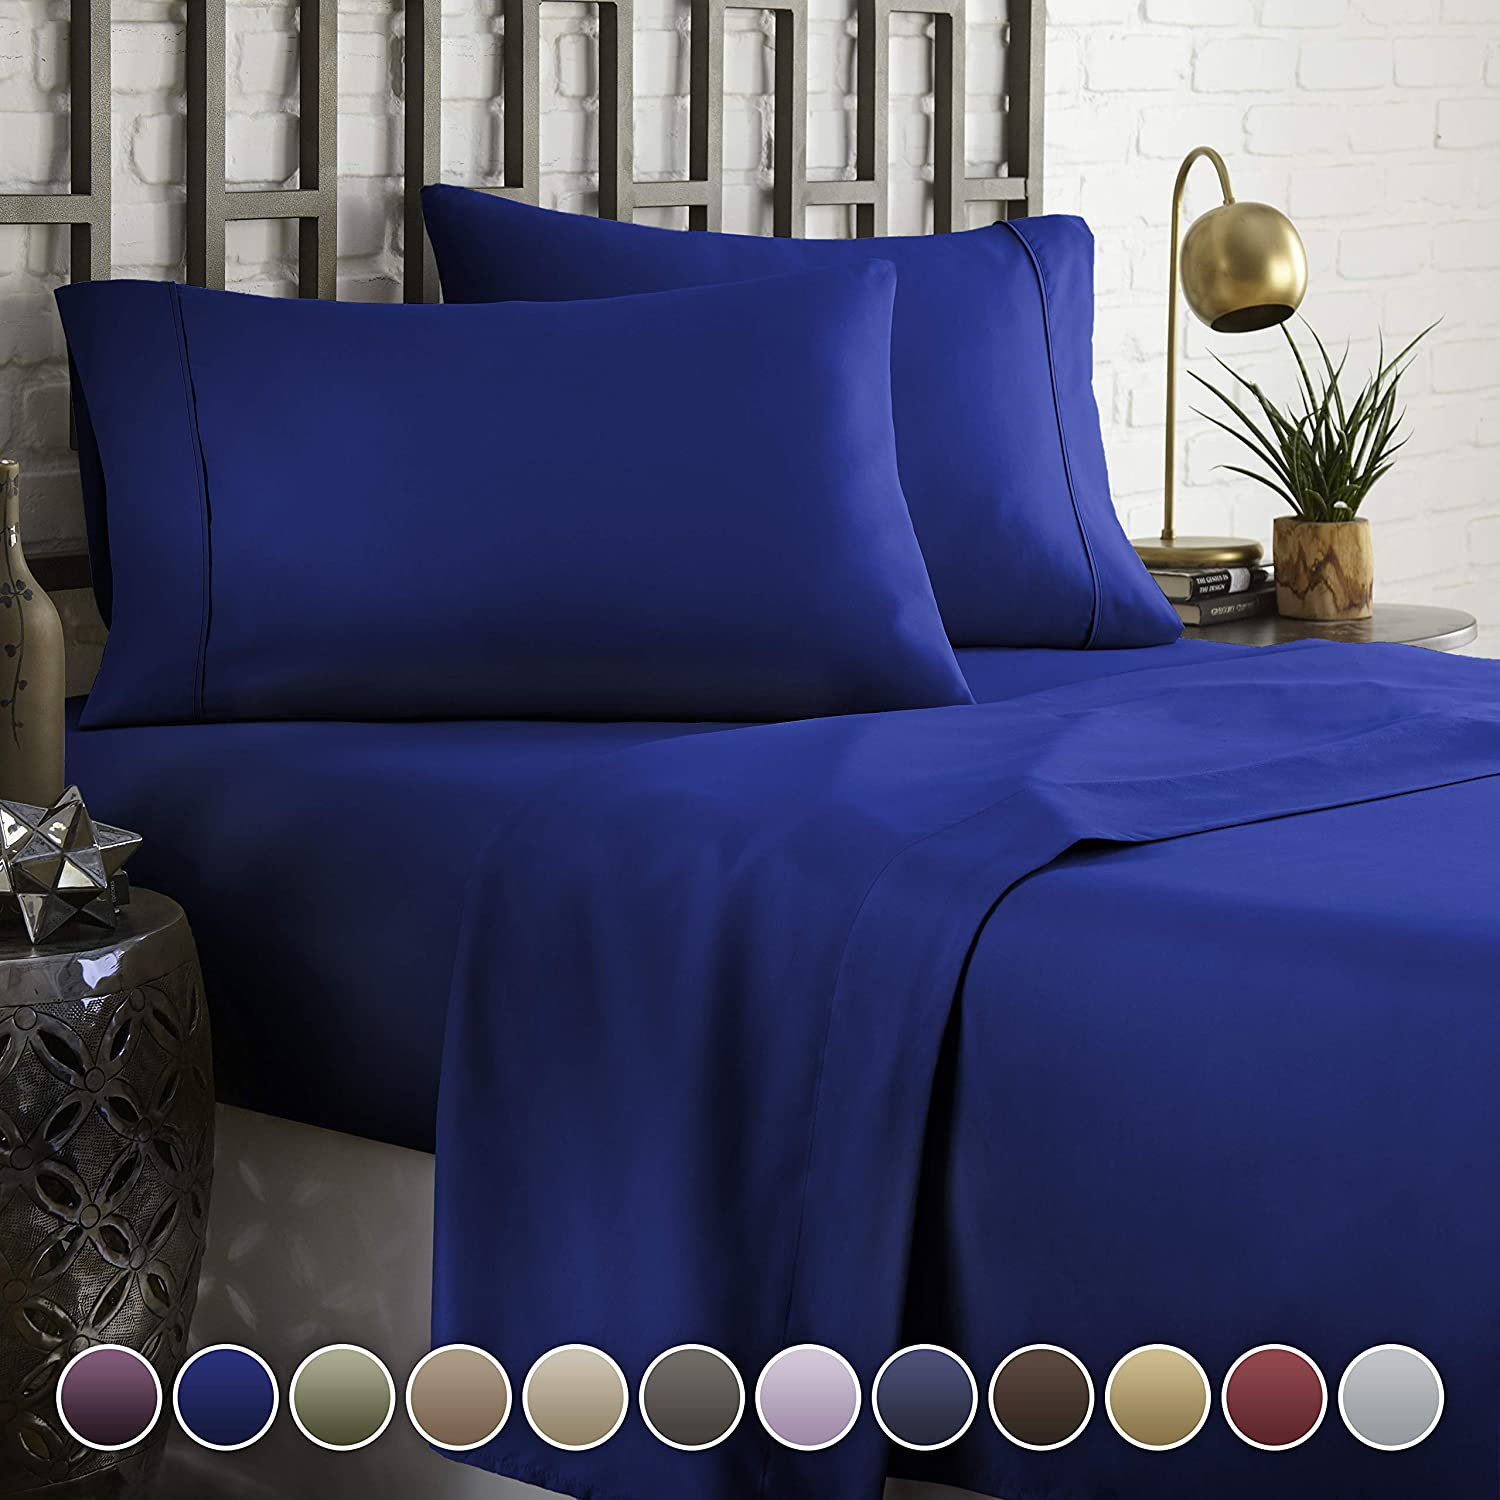 HC COLLECTION Hotel Luxury Comfort Bed Sheets Set, 1800 Series Bedding Set, Deep Pockets, Wrinkle & Fade Resistant, Hypoallergenic Sheet & Pillow Case Set(King, Royal Blue)